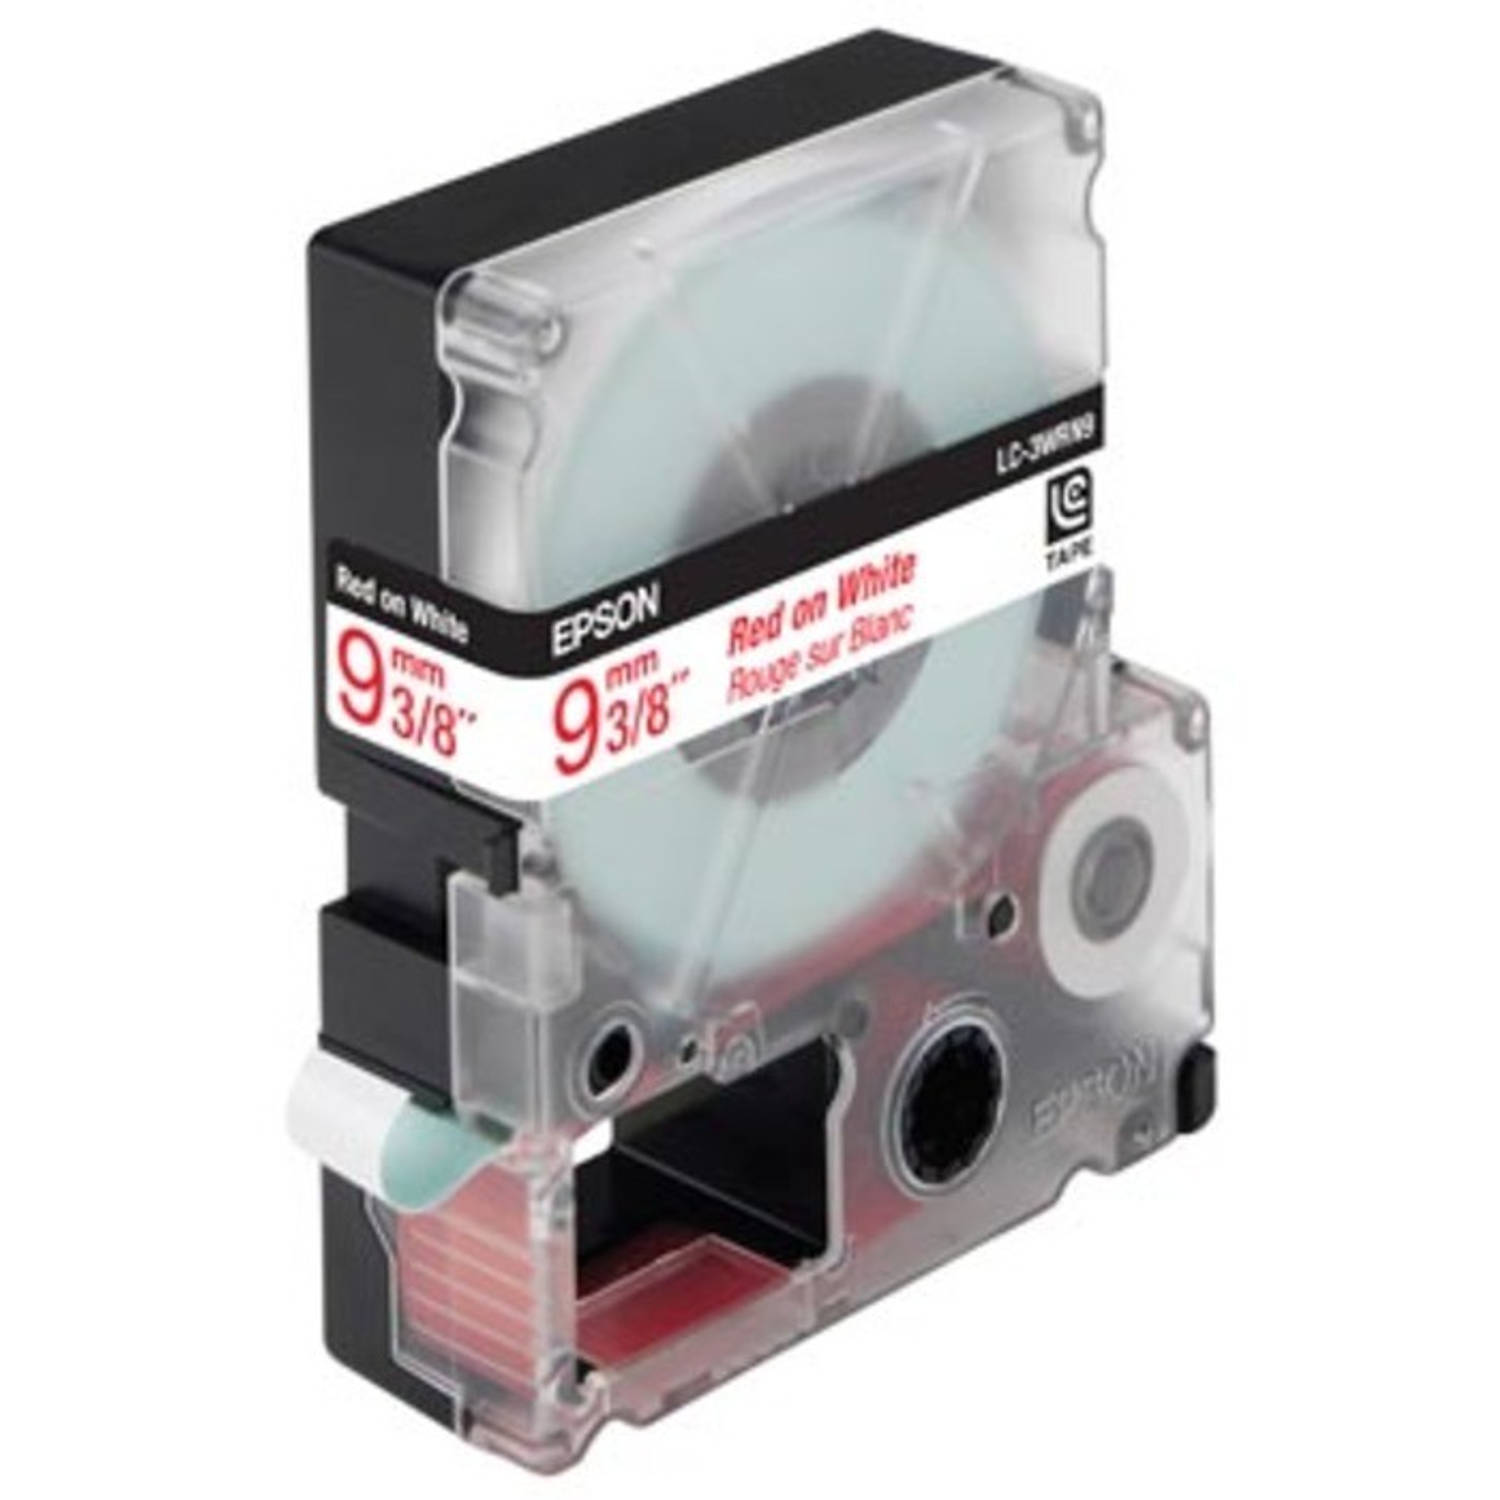 Epson tape 9 mm, rood op wit